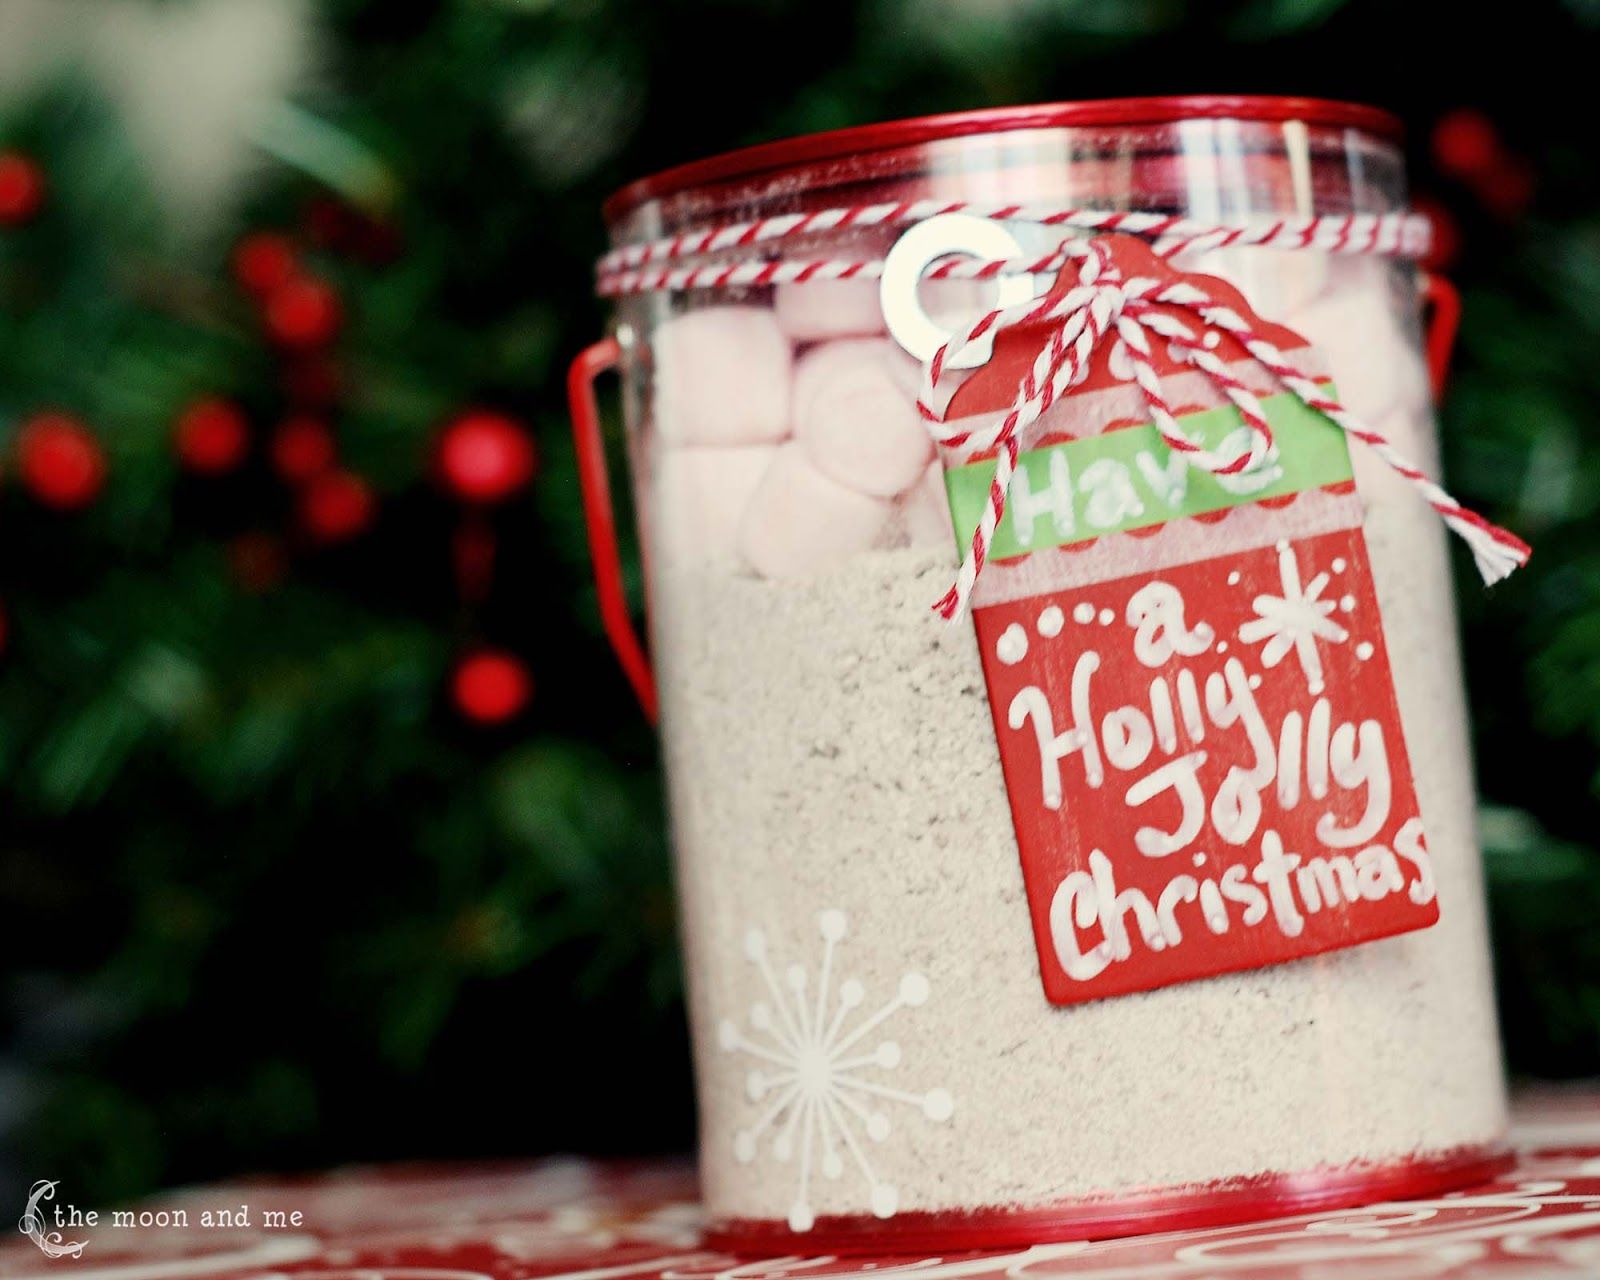 The Moon and Me: 3 Hot Drink Mixes for Giving {and Keeping!}